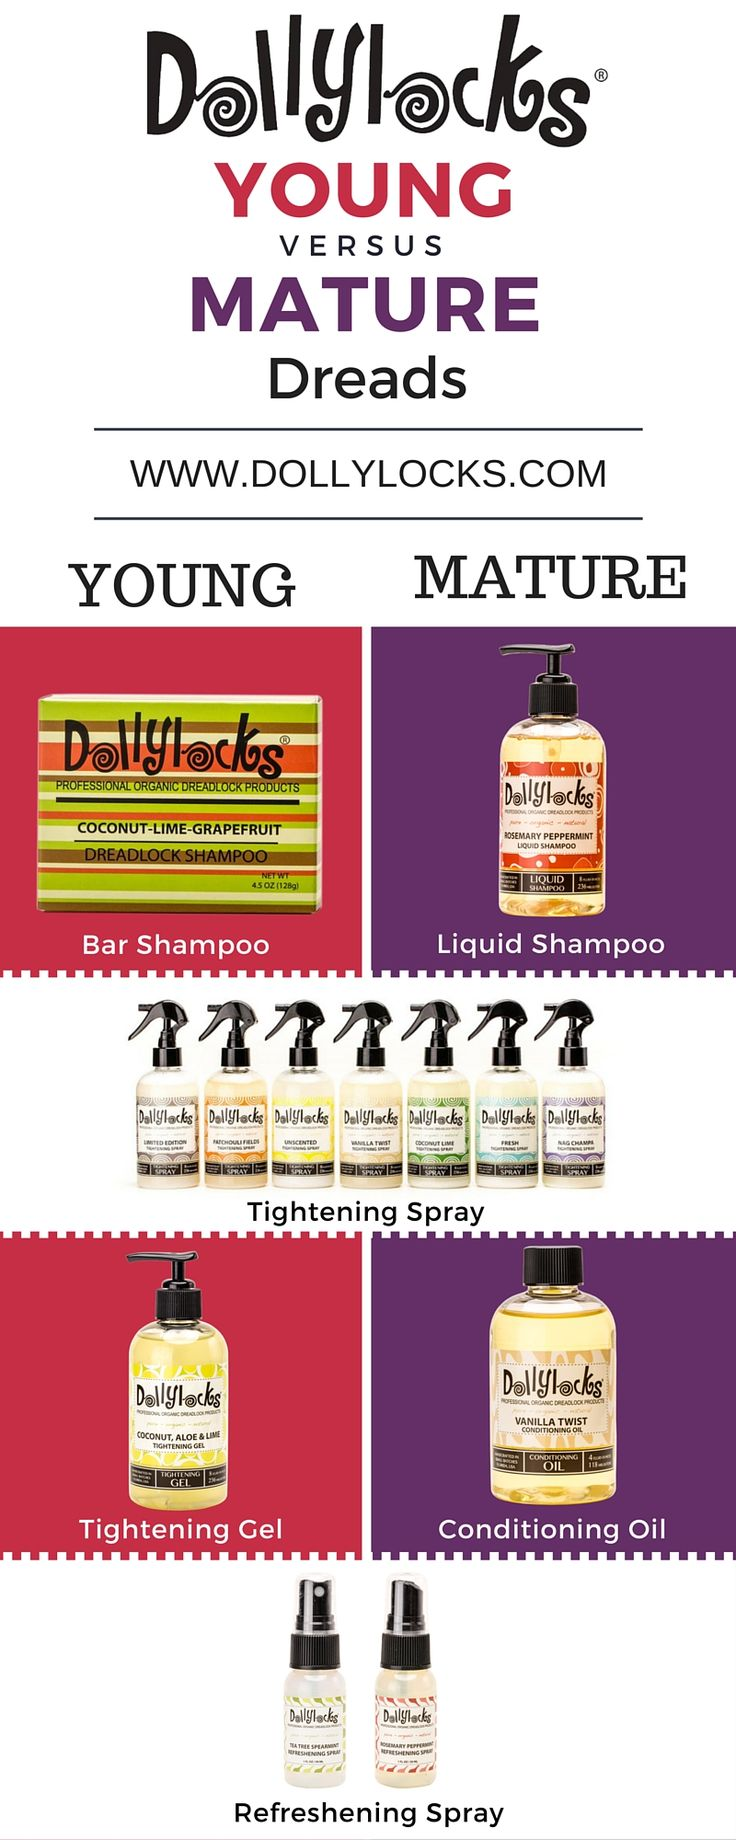 Comparing the products for young and mature dreads. #dreadlocks #dreads #organic #dollylocks